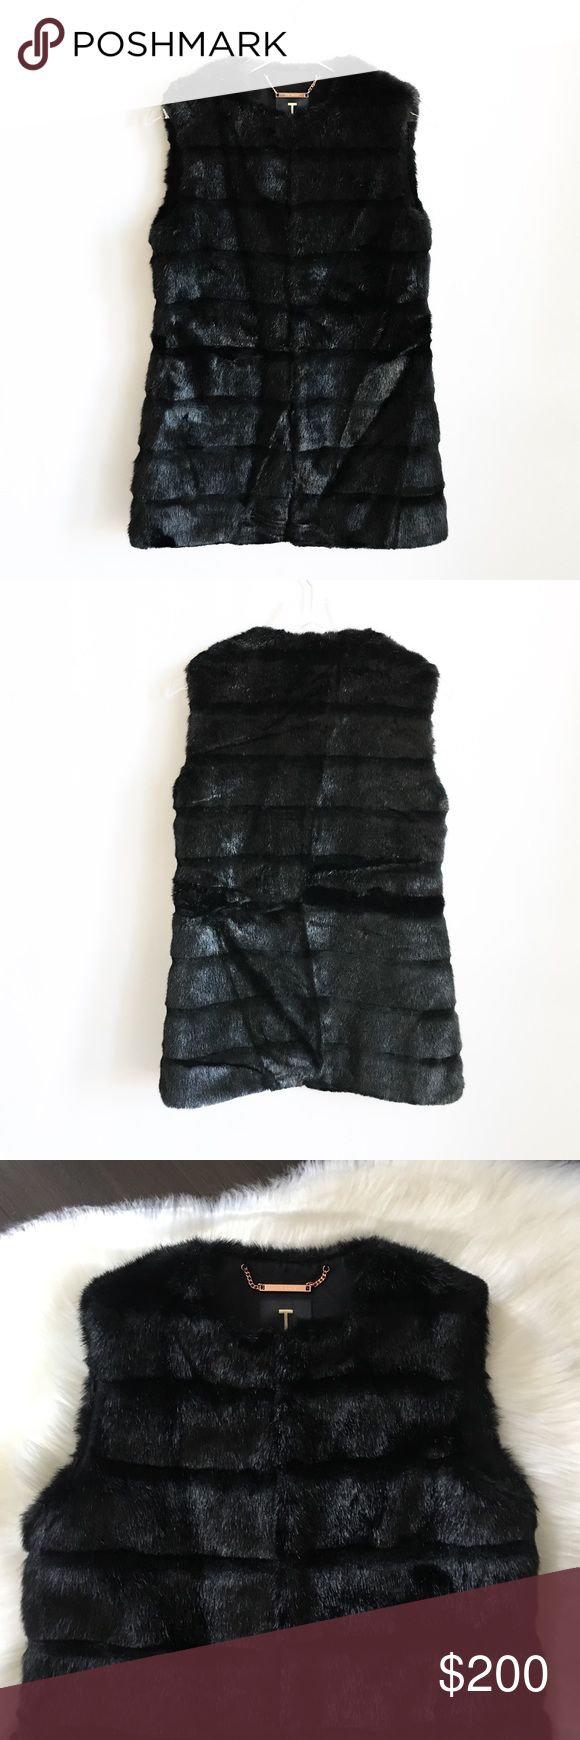 """Ted Baker Black Fabunni Faux Fur Vest Size 2 Ted Baker Black Fabunni Faux Fur Vest Size 2. NWOT! Faux fur. Concealed eye fastening. Shell: 81% Modacrylic, 19% Polyester; Body Lining: 97% Polyester, 3% Elastane; Sleeve Lining: 96% Polyester, 4% Elastane. Length: 30"""" from top seam to bottom. Care information: Dry clean only. Listed at a 50% discount price! ❤️Proceeds are Given Back to children in need!❤️ Ships tomorrow(with expectations of weekends and holidays)! Ted Baker London Jackets…"""